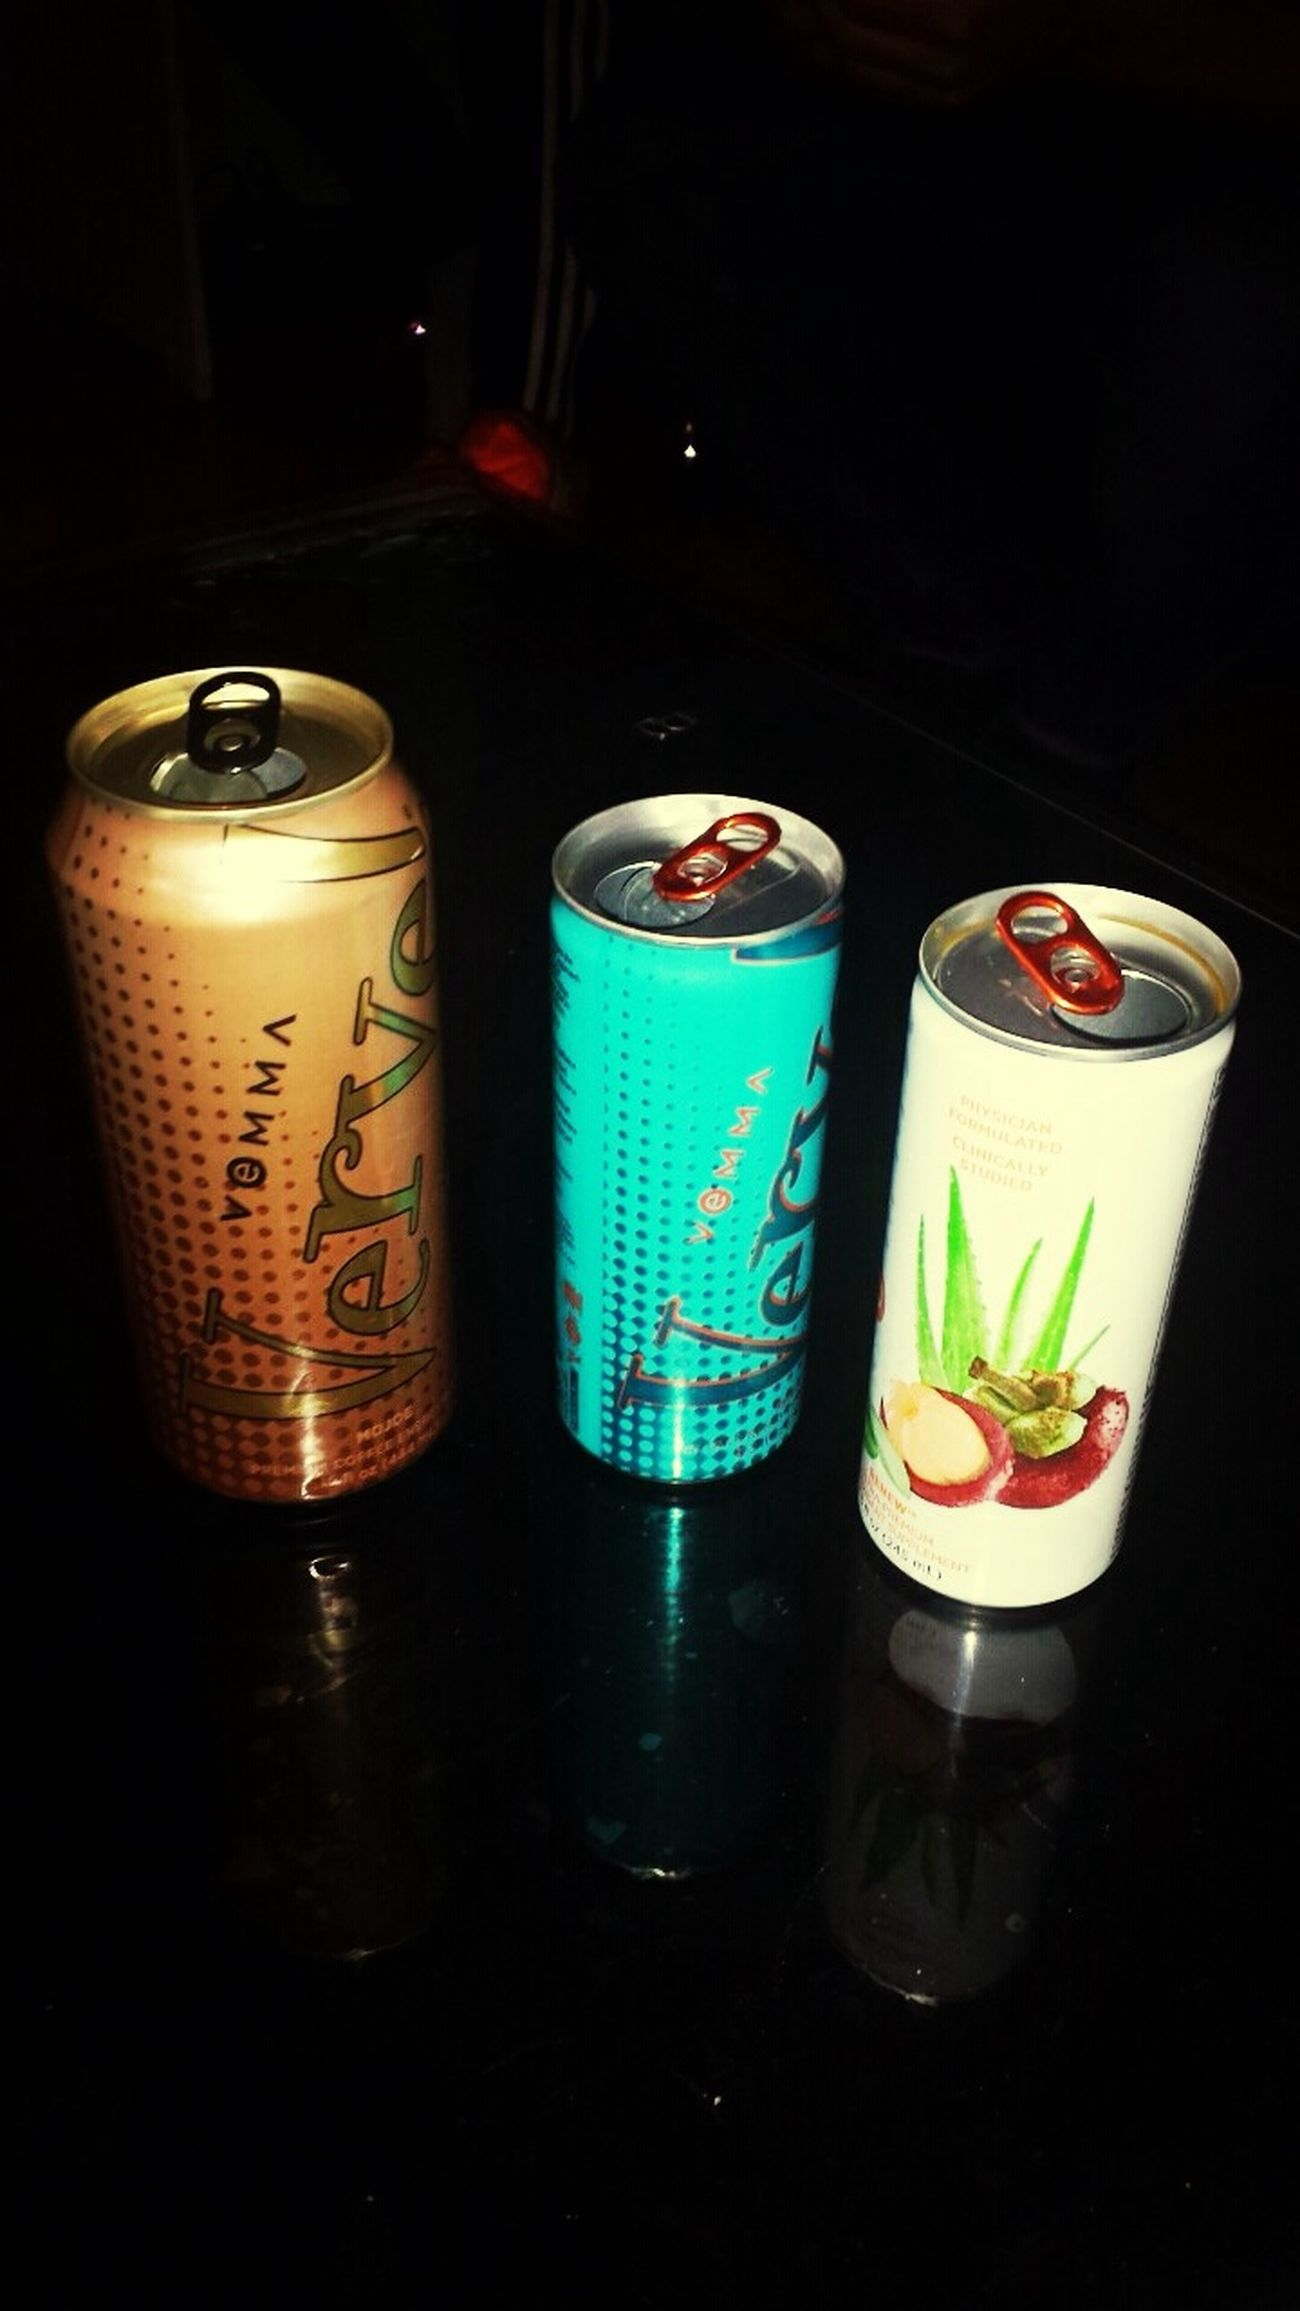 New products!!!! :D Verve  Vemma  Good Drinks